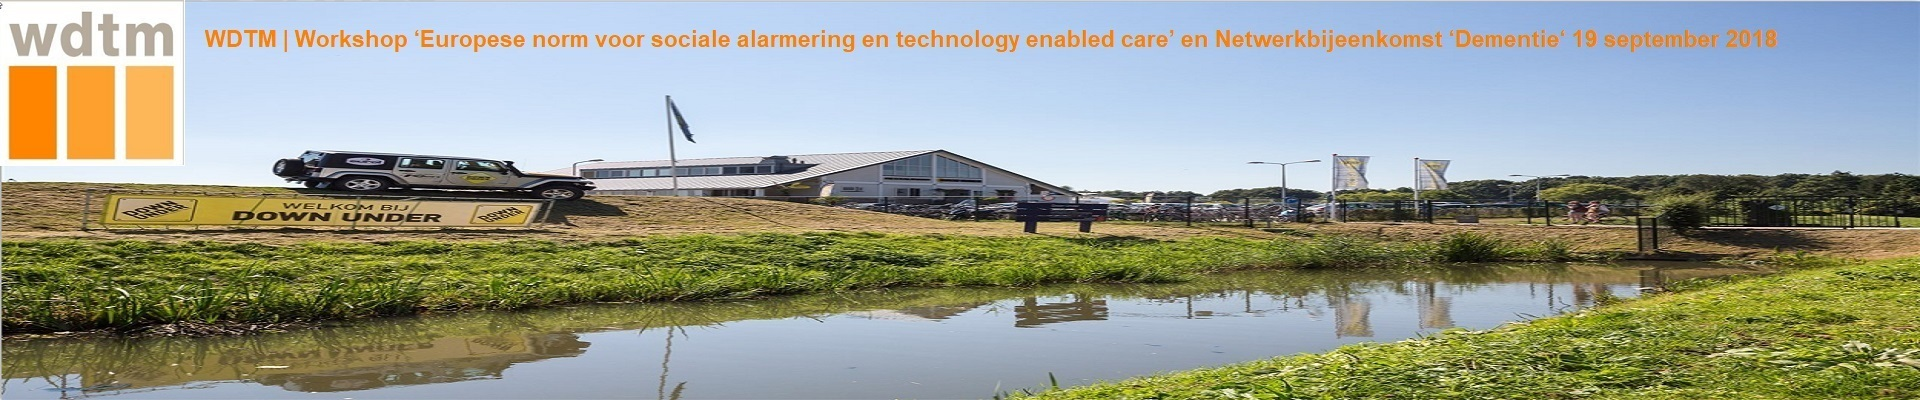 WDTM Workshop 'Europese norm voor sociale alarmering en technology enabled care' en Netwerkbijeenkomst over 'Dementie' d.d. 19 september 2018